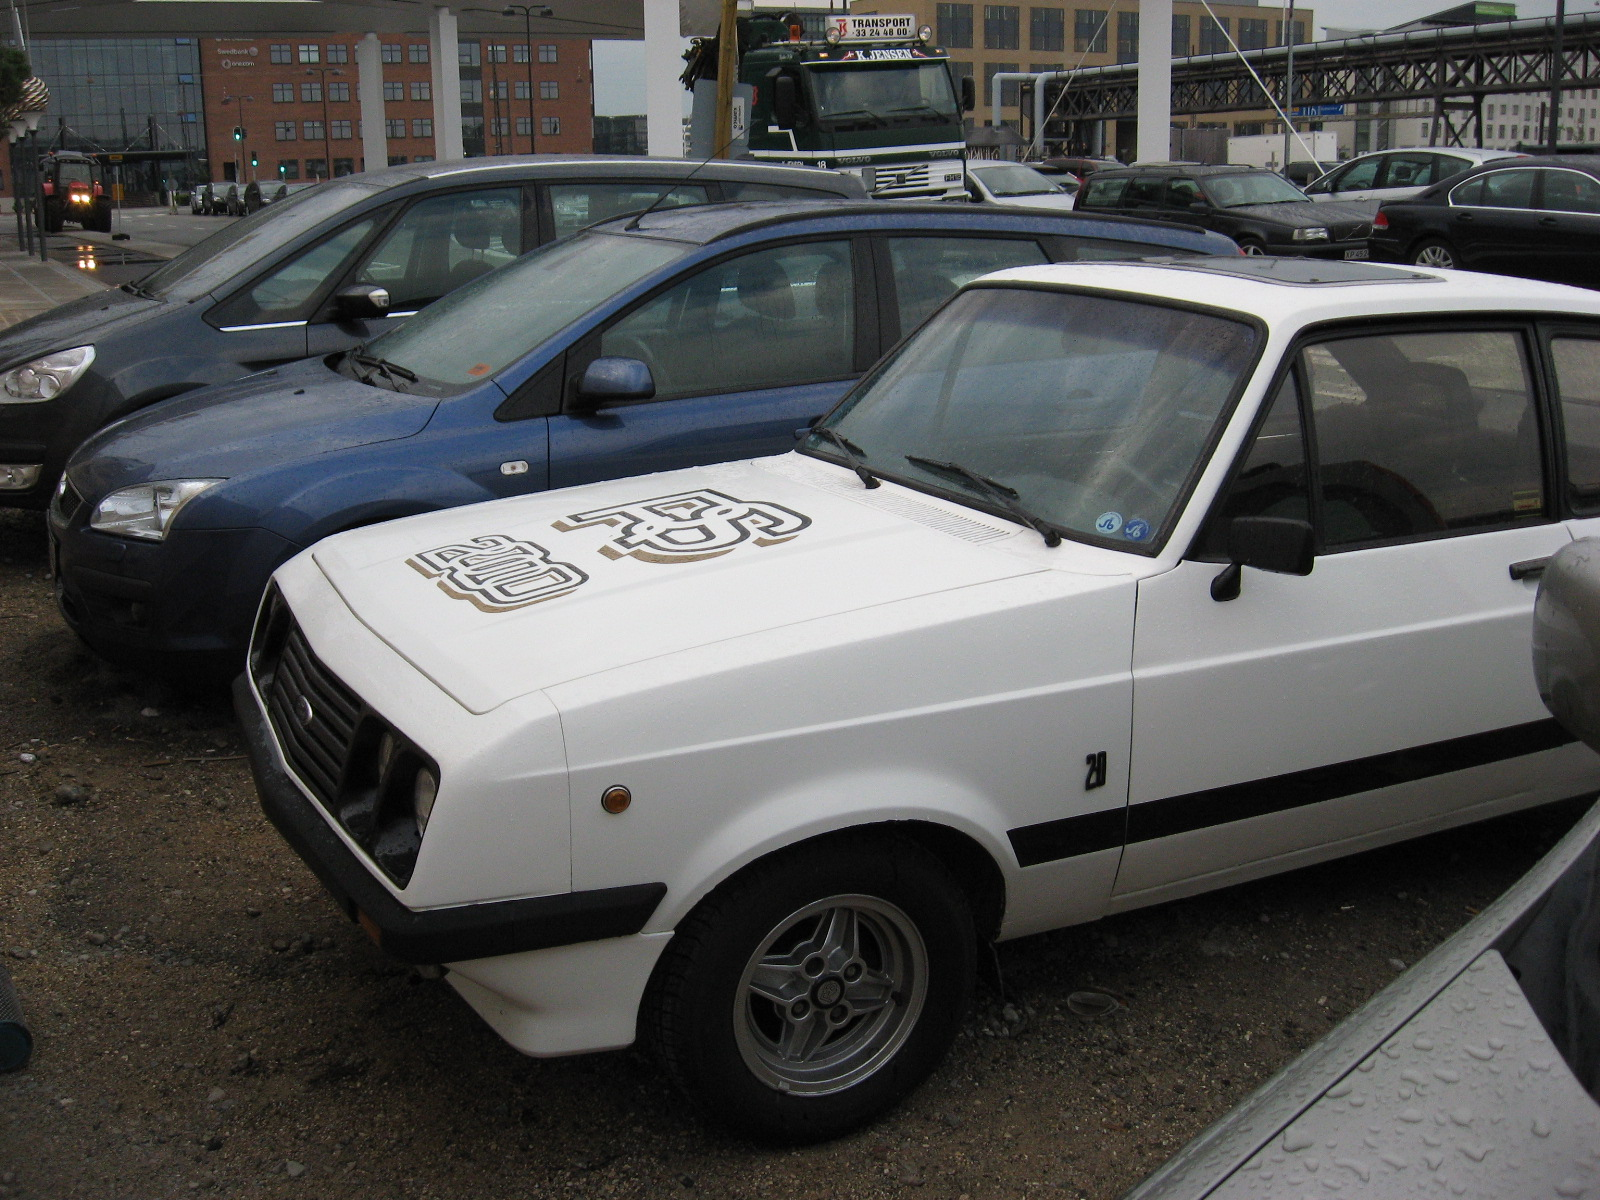 Accident Cars For Sale In Denmark: Danish Rs2000 Mk2 Scarface